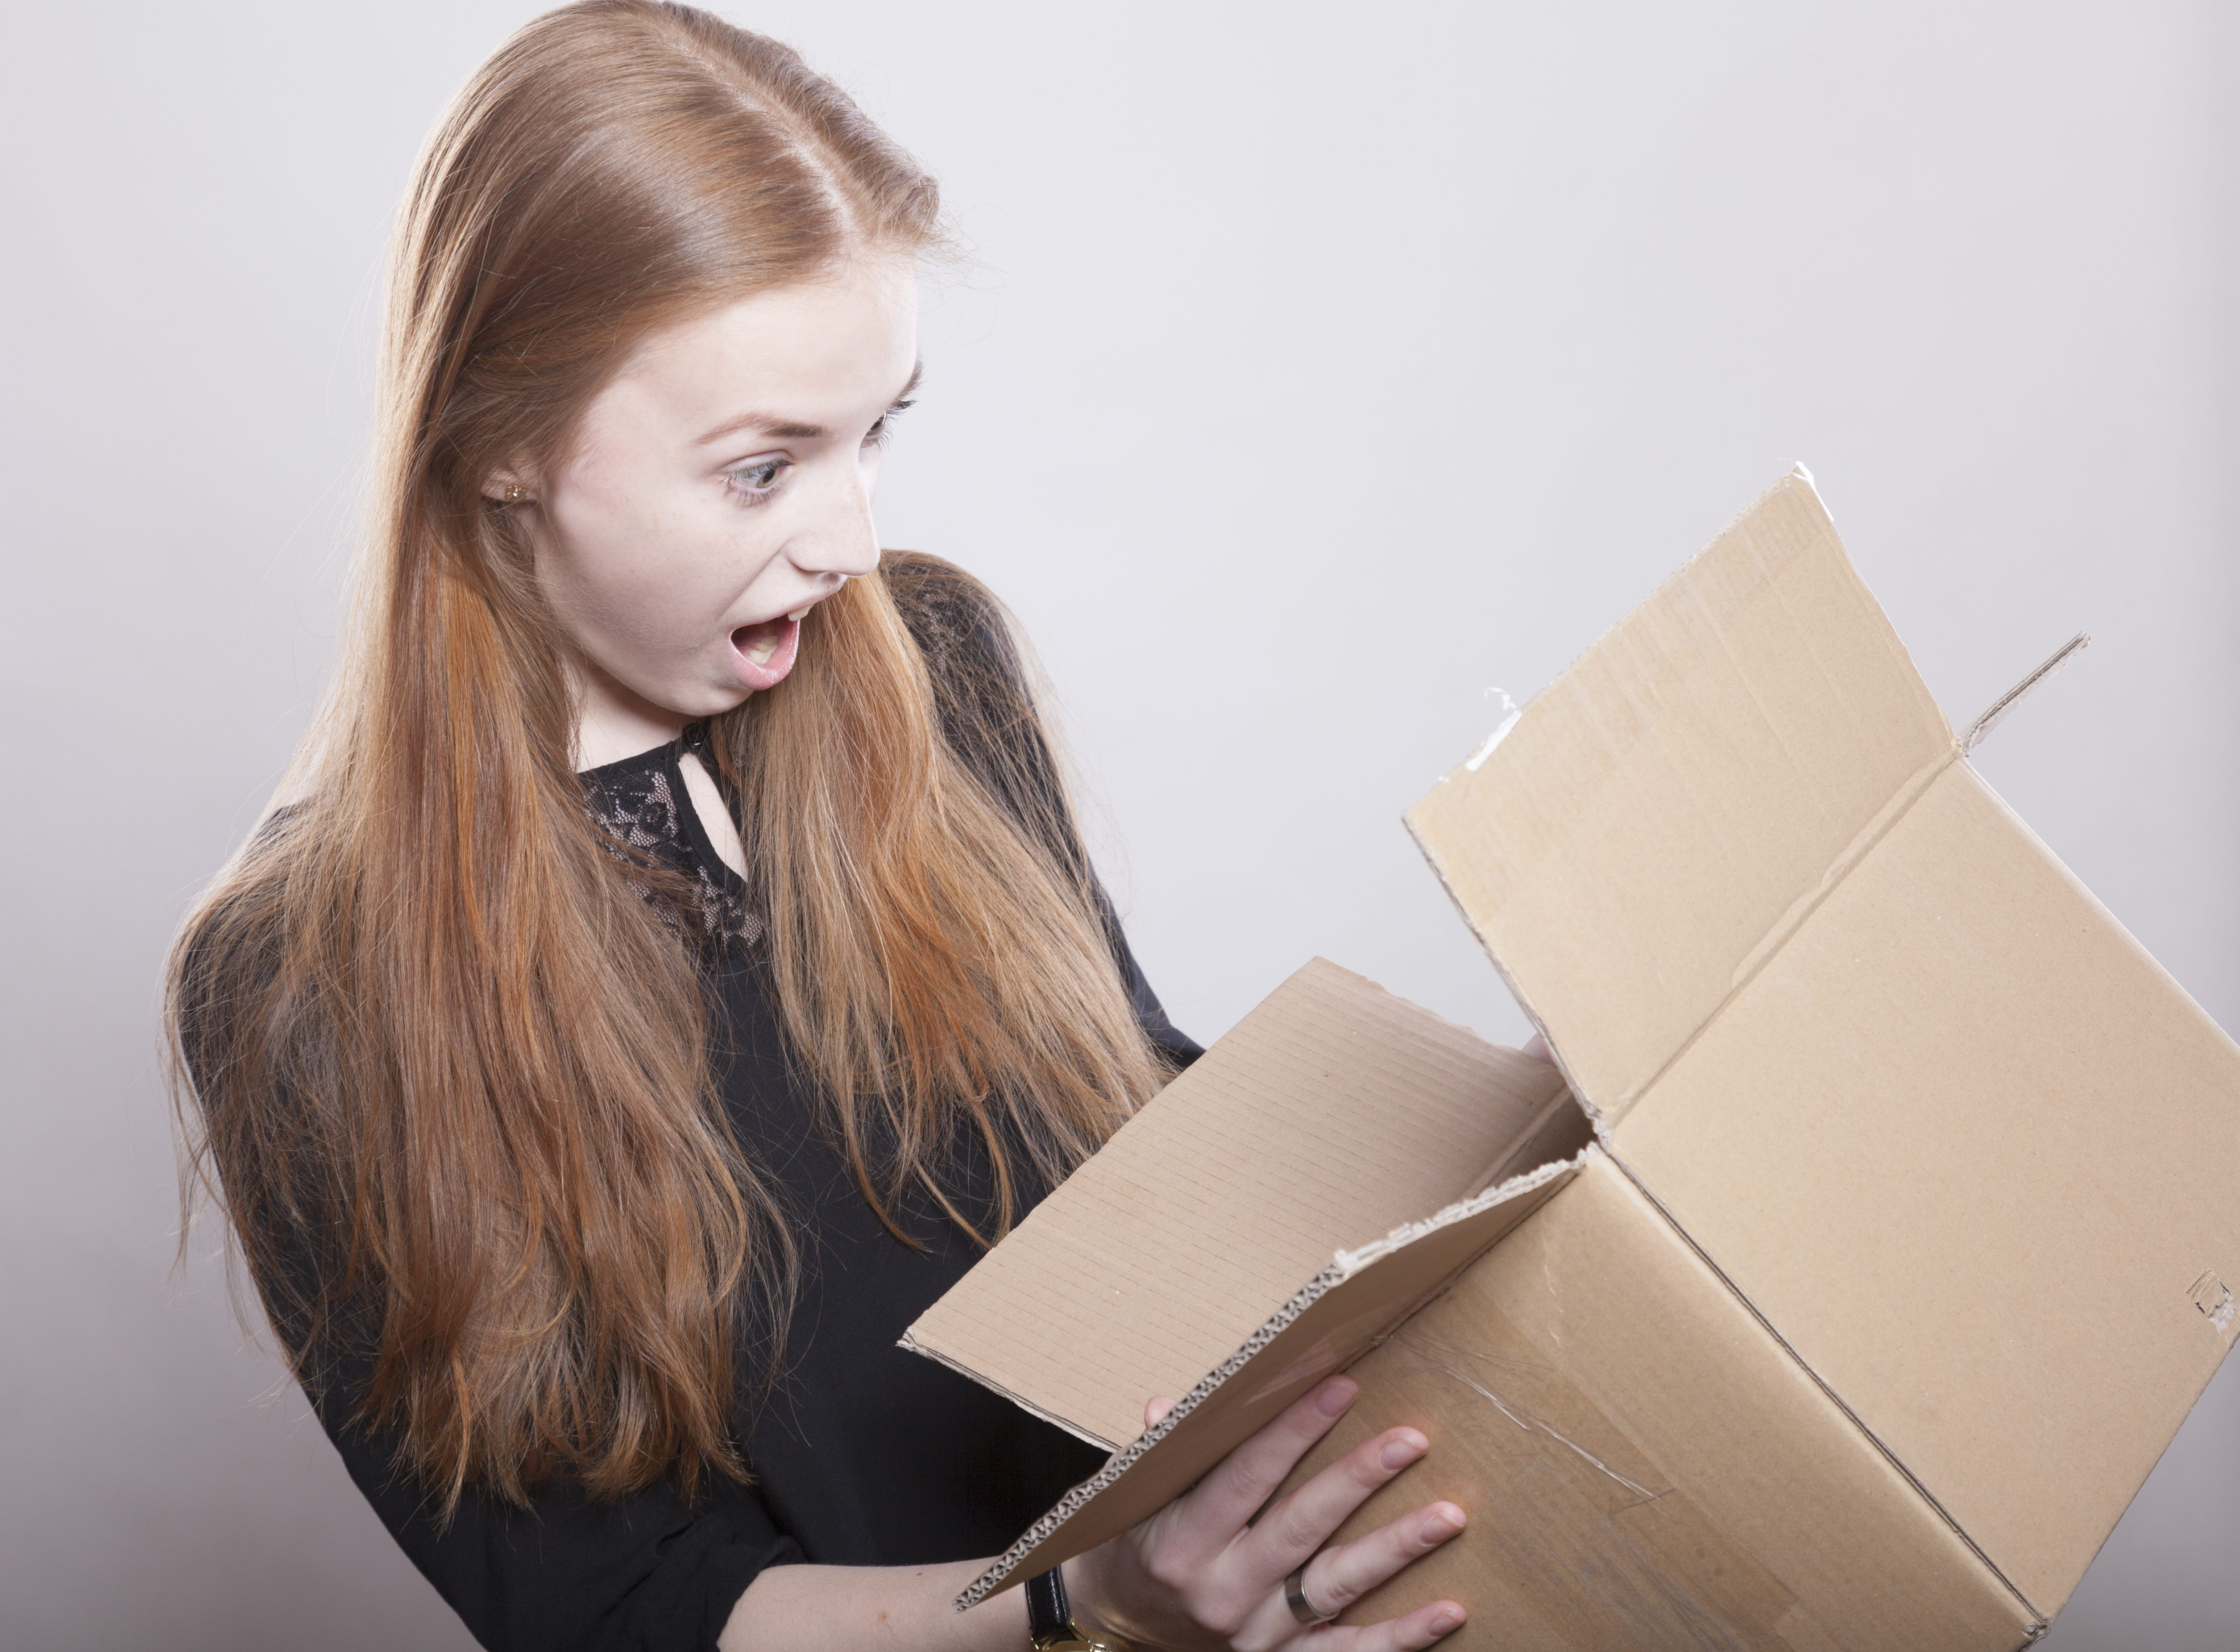 surprised girl opening a box